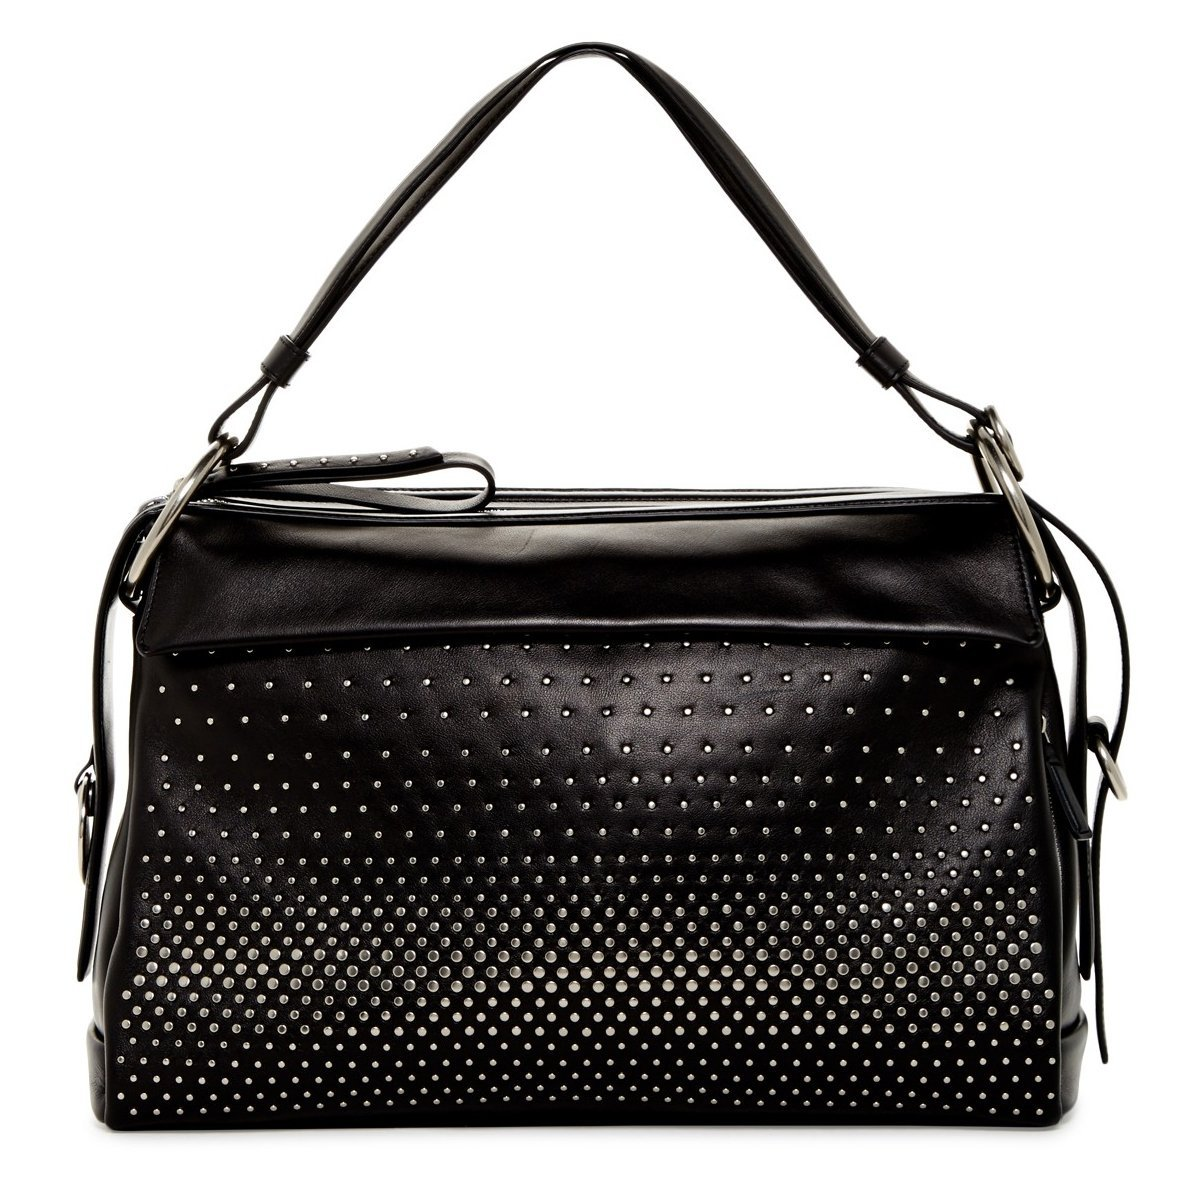 Primary image for Marc by Marc Jacobs Prism 40 Leather Shoulder Bag - Black